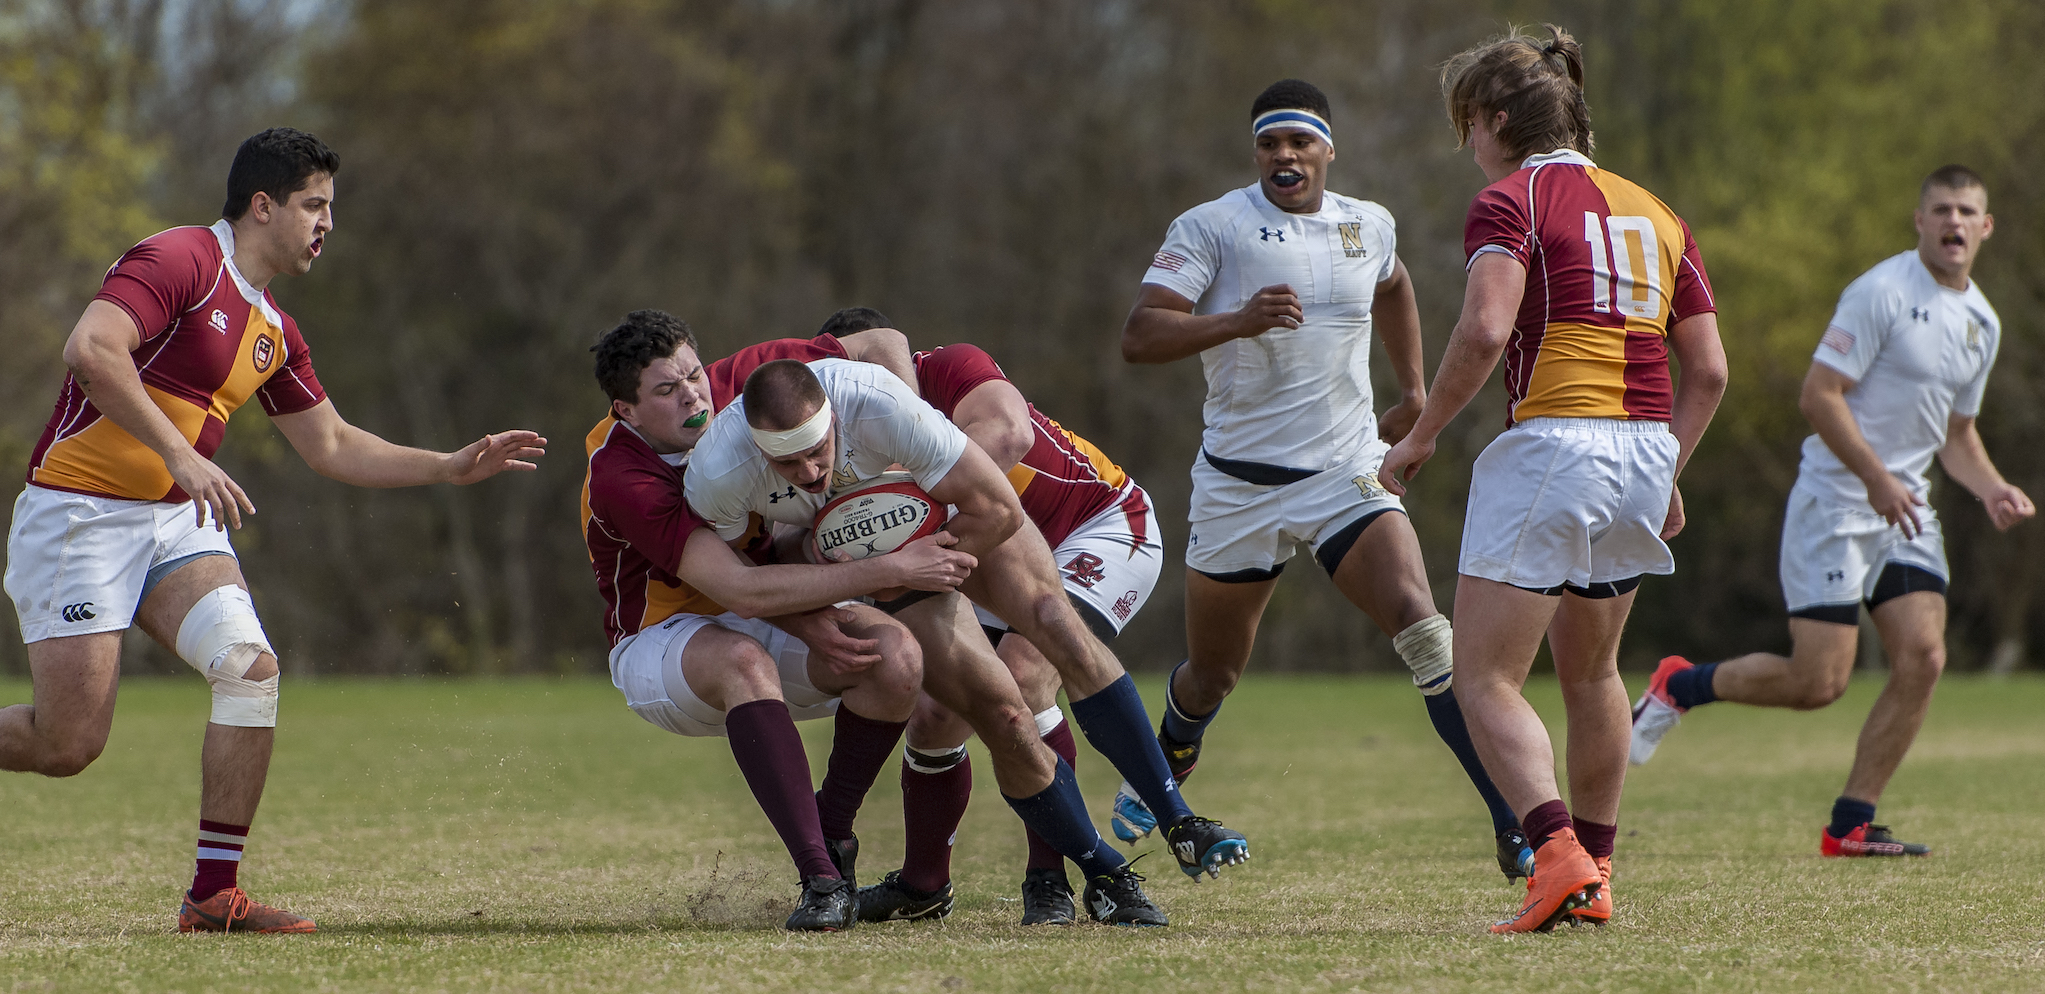 Navy v Boston College rugby in the 2017 Varsity Cup. Colleen McCloskey photo for Goff Rugby Report.